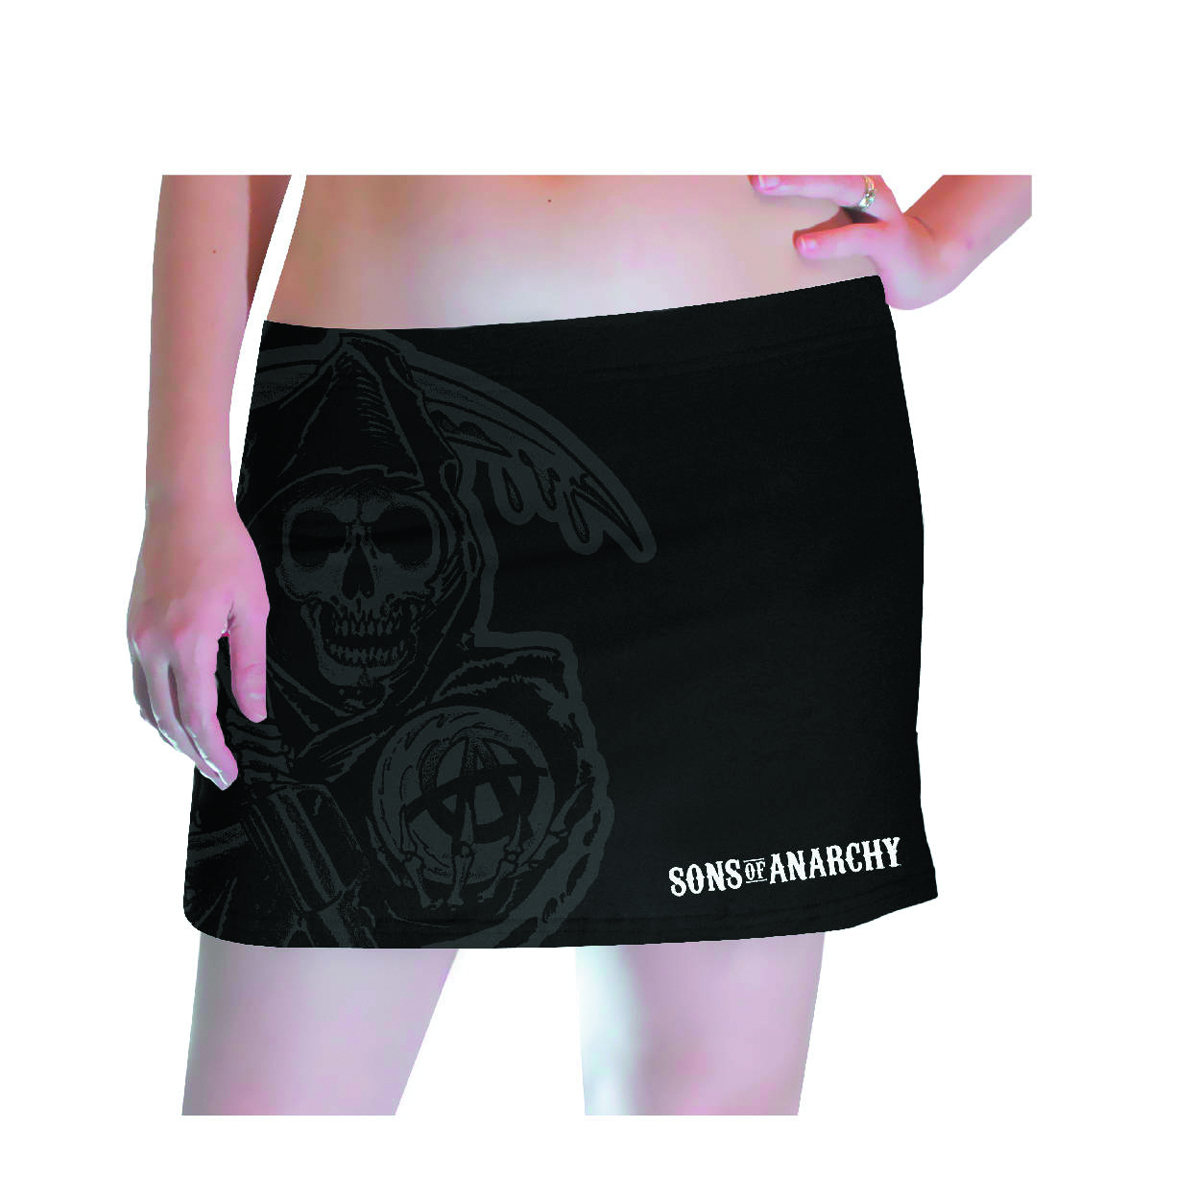 SONS OF ANARCHY REAPER SKIRT XL